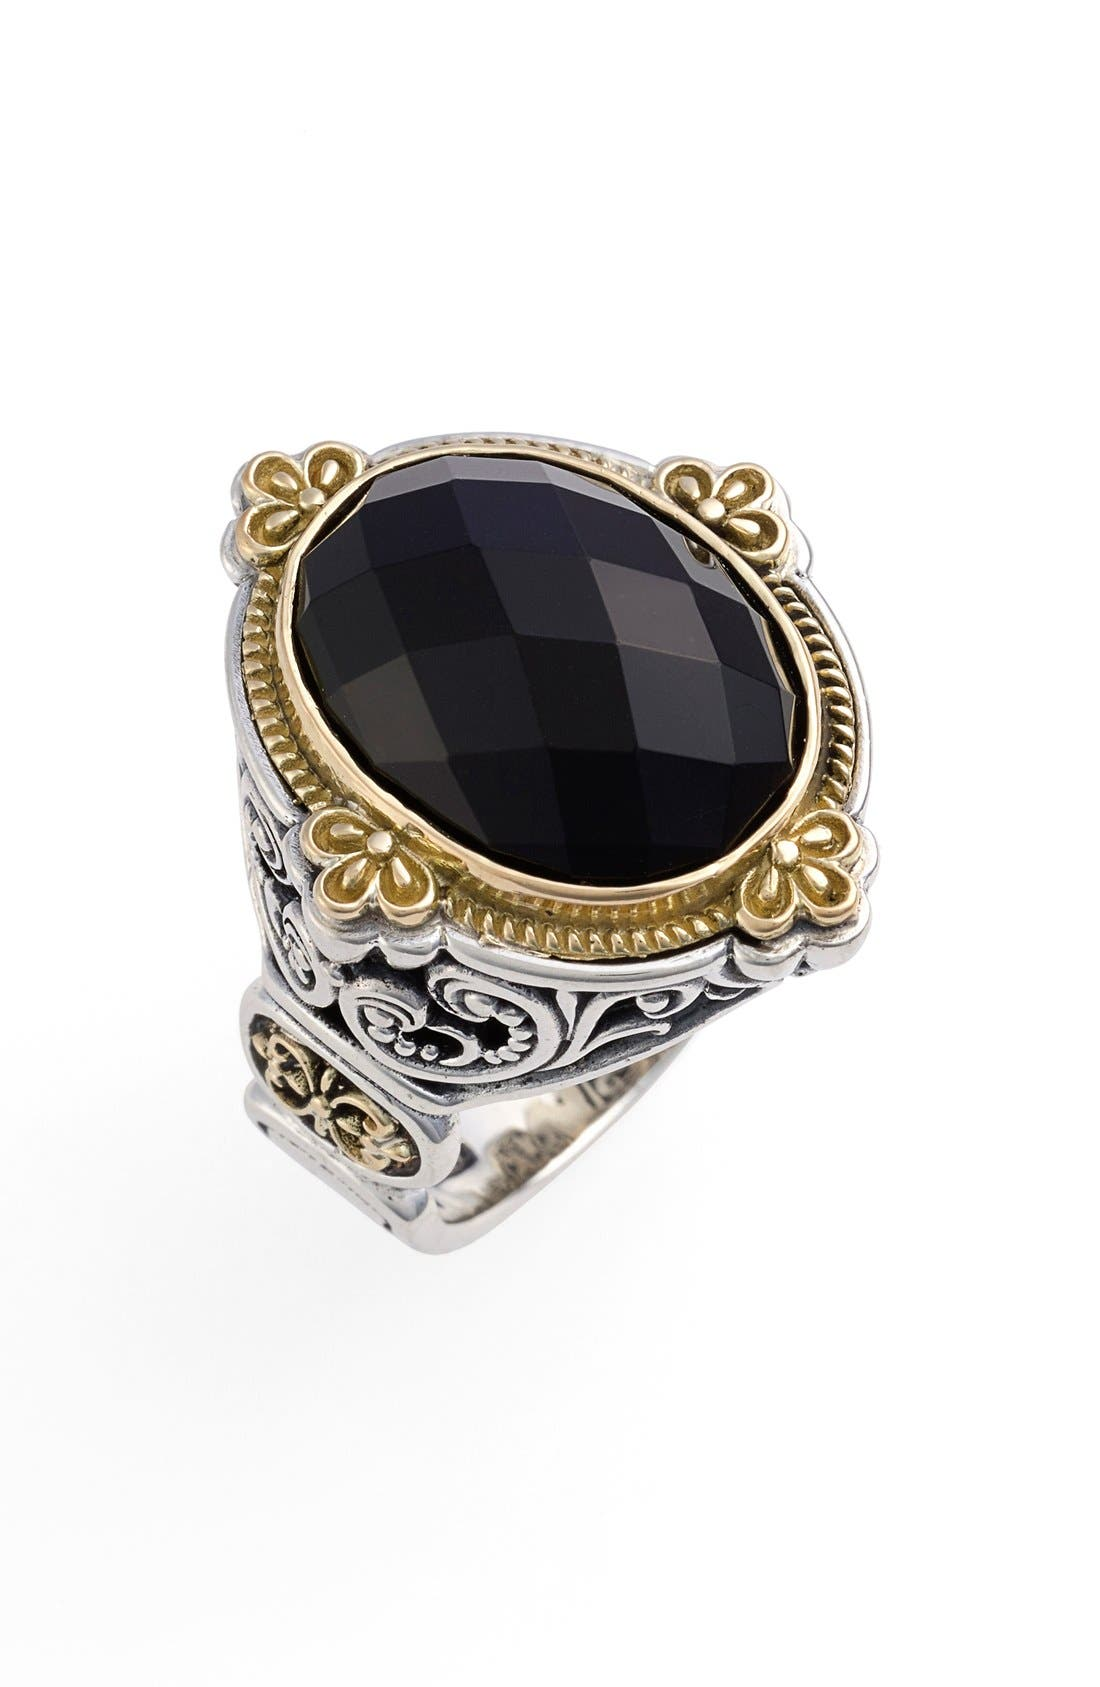 Main Image - Konstantino 'Nykta' Faceted Stone Ring